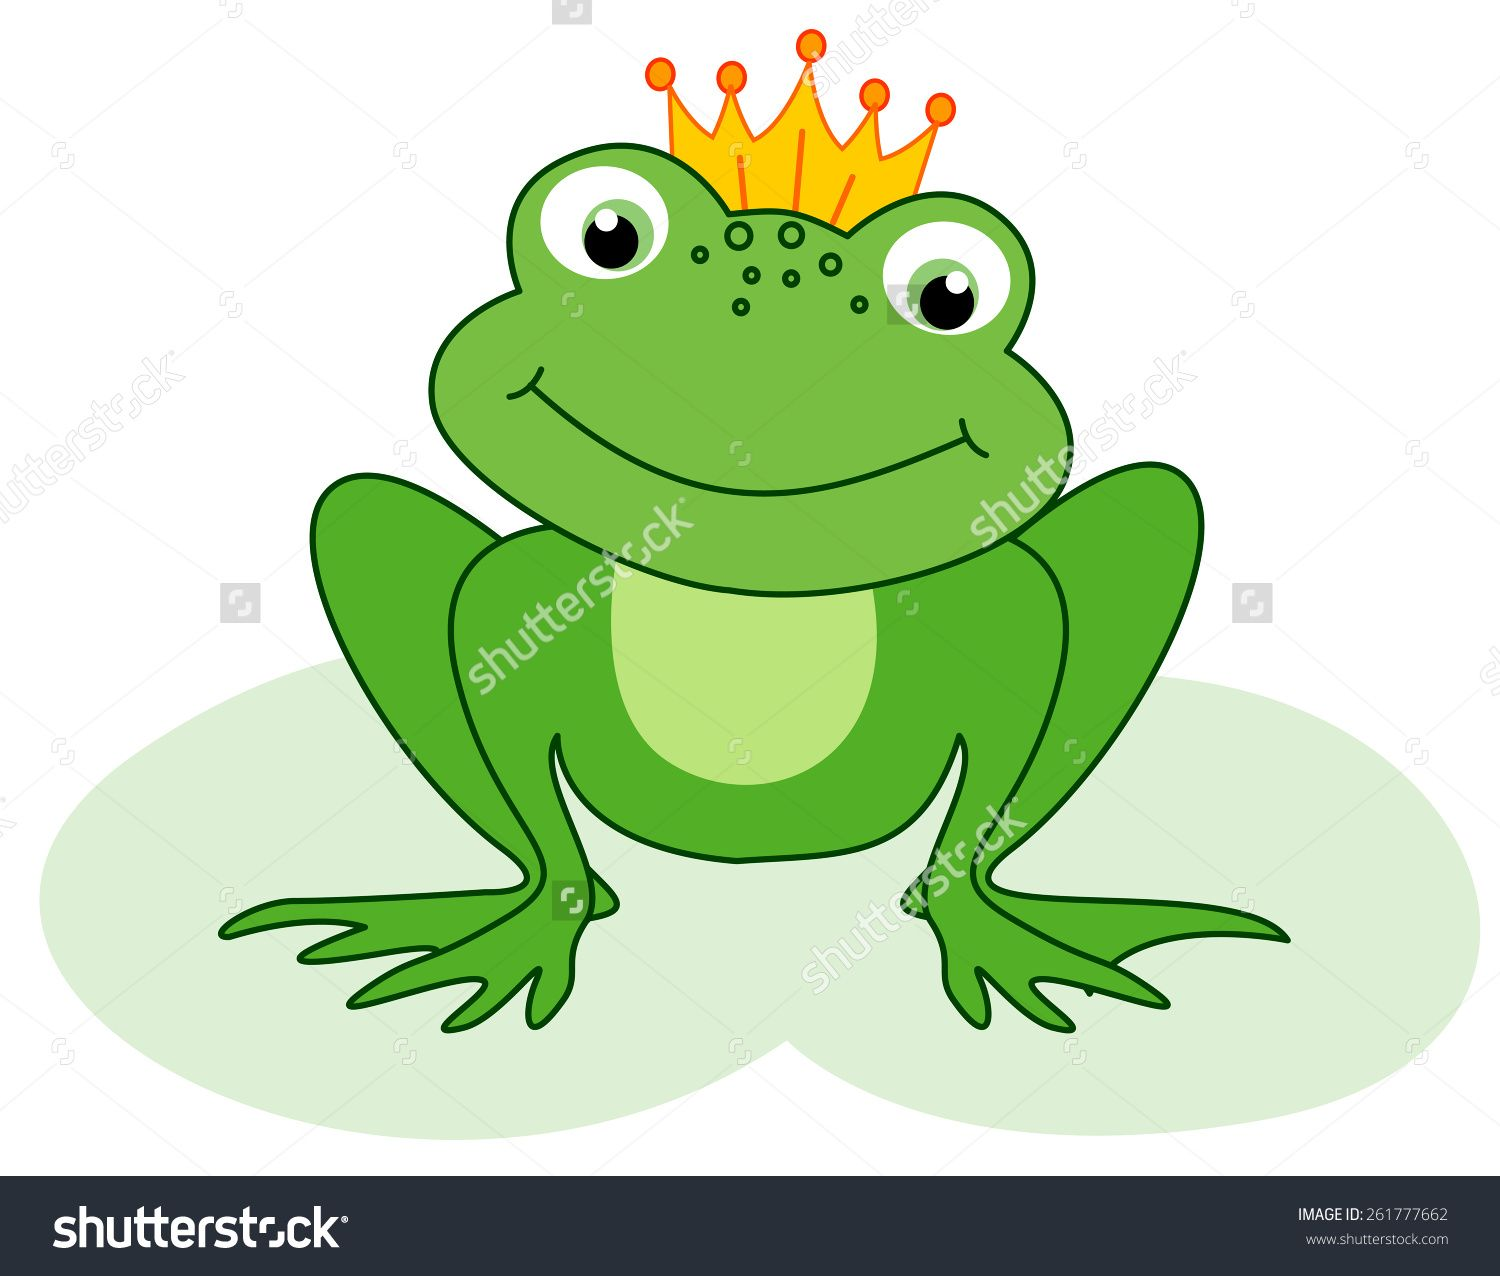 Toad clipart frog prince. Cute little with a